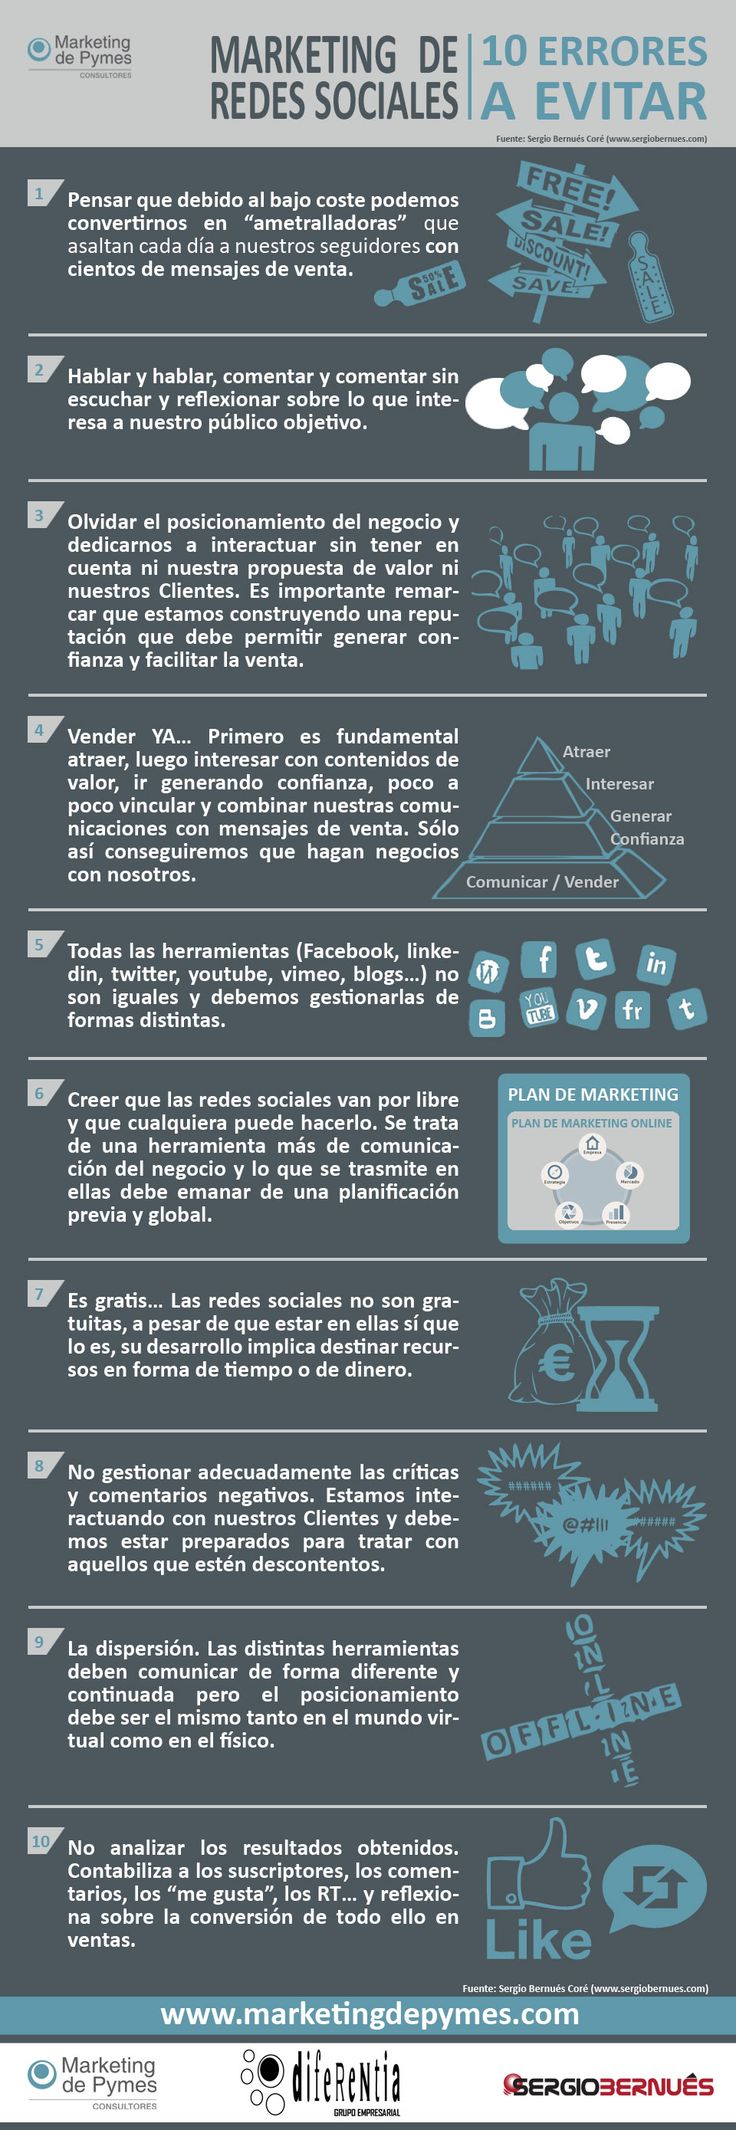 10 errores en marketing en Redes Sociales #infografia #infographic #marketing #socialmedia